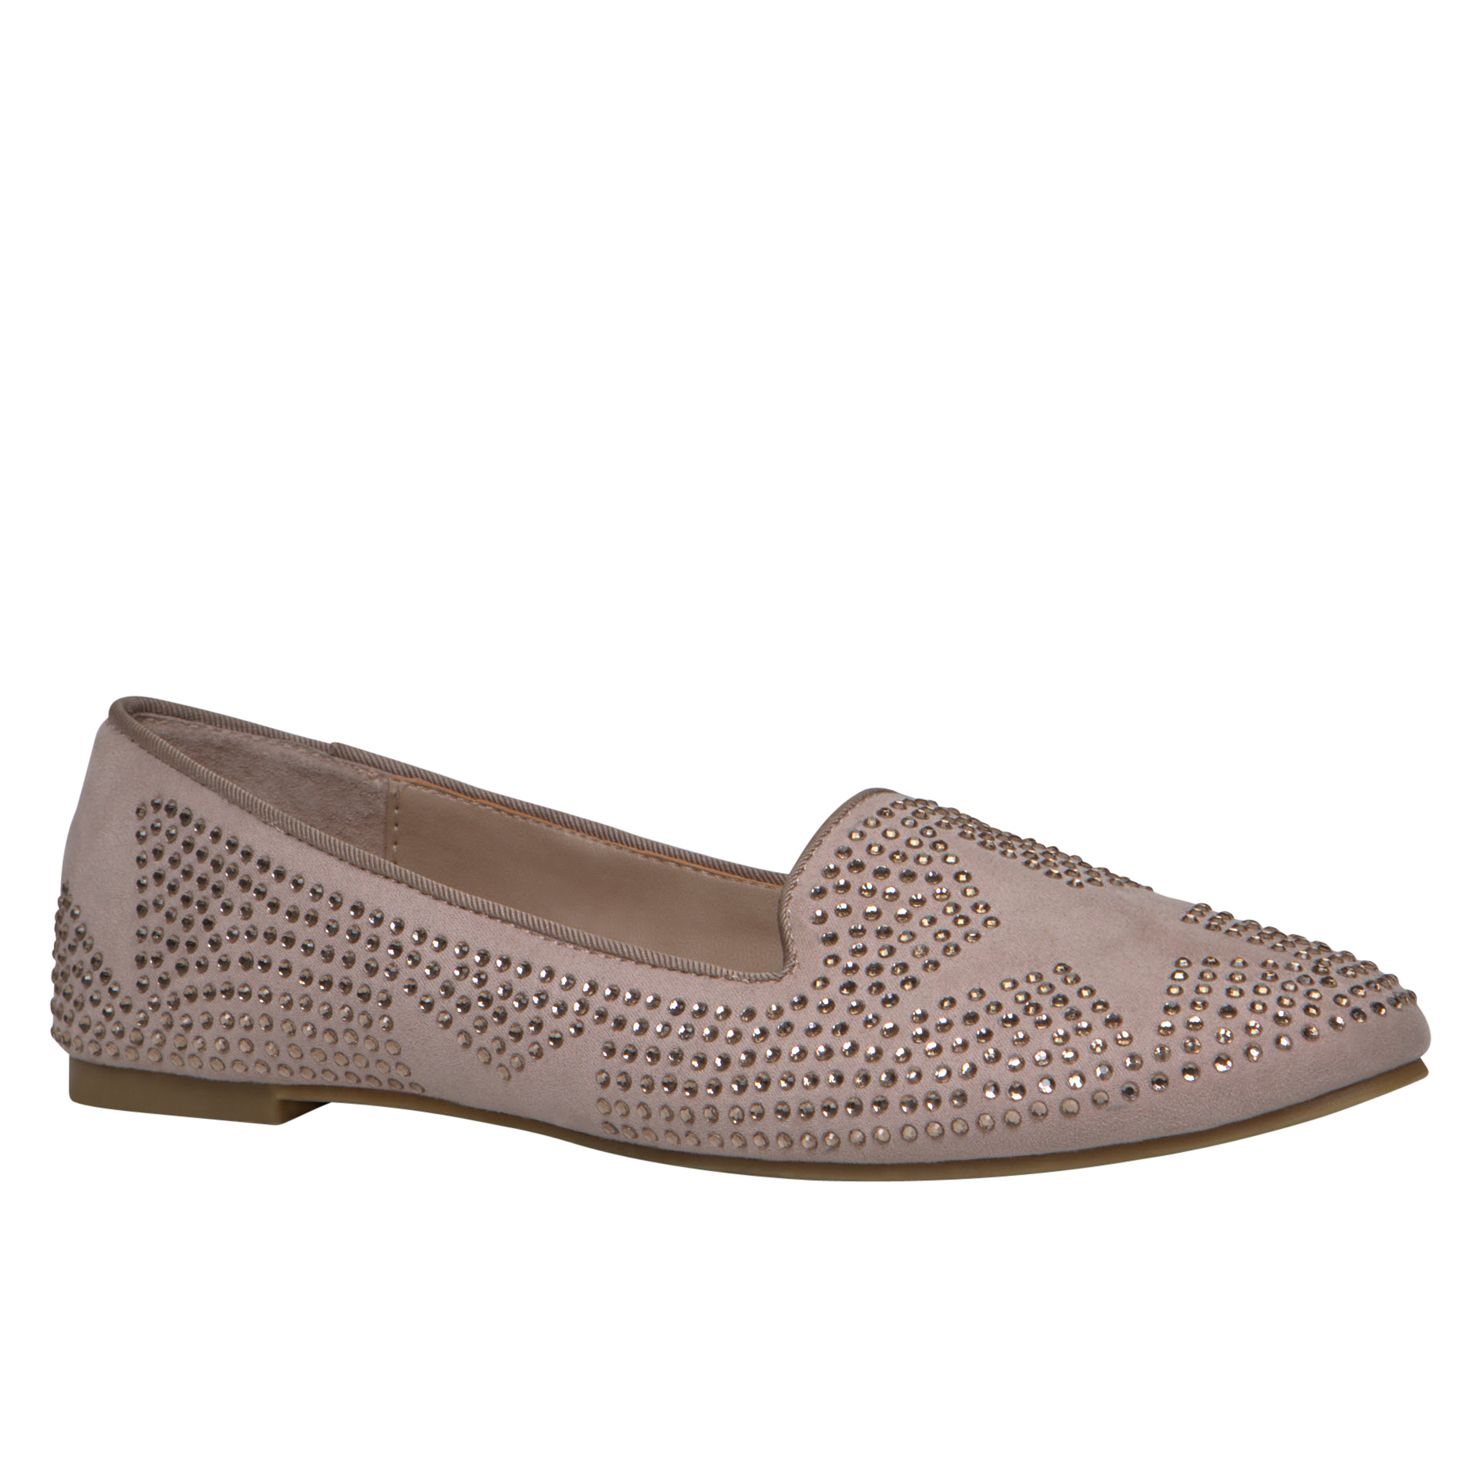 Janni flat loafer shoes